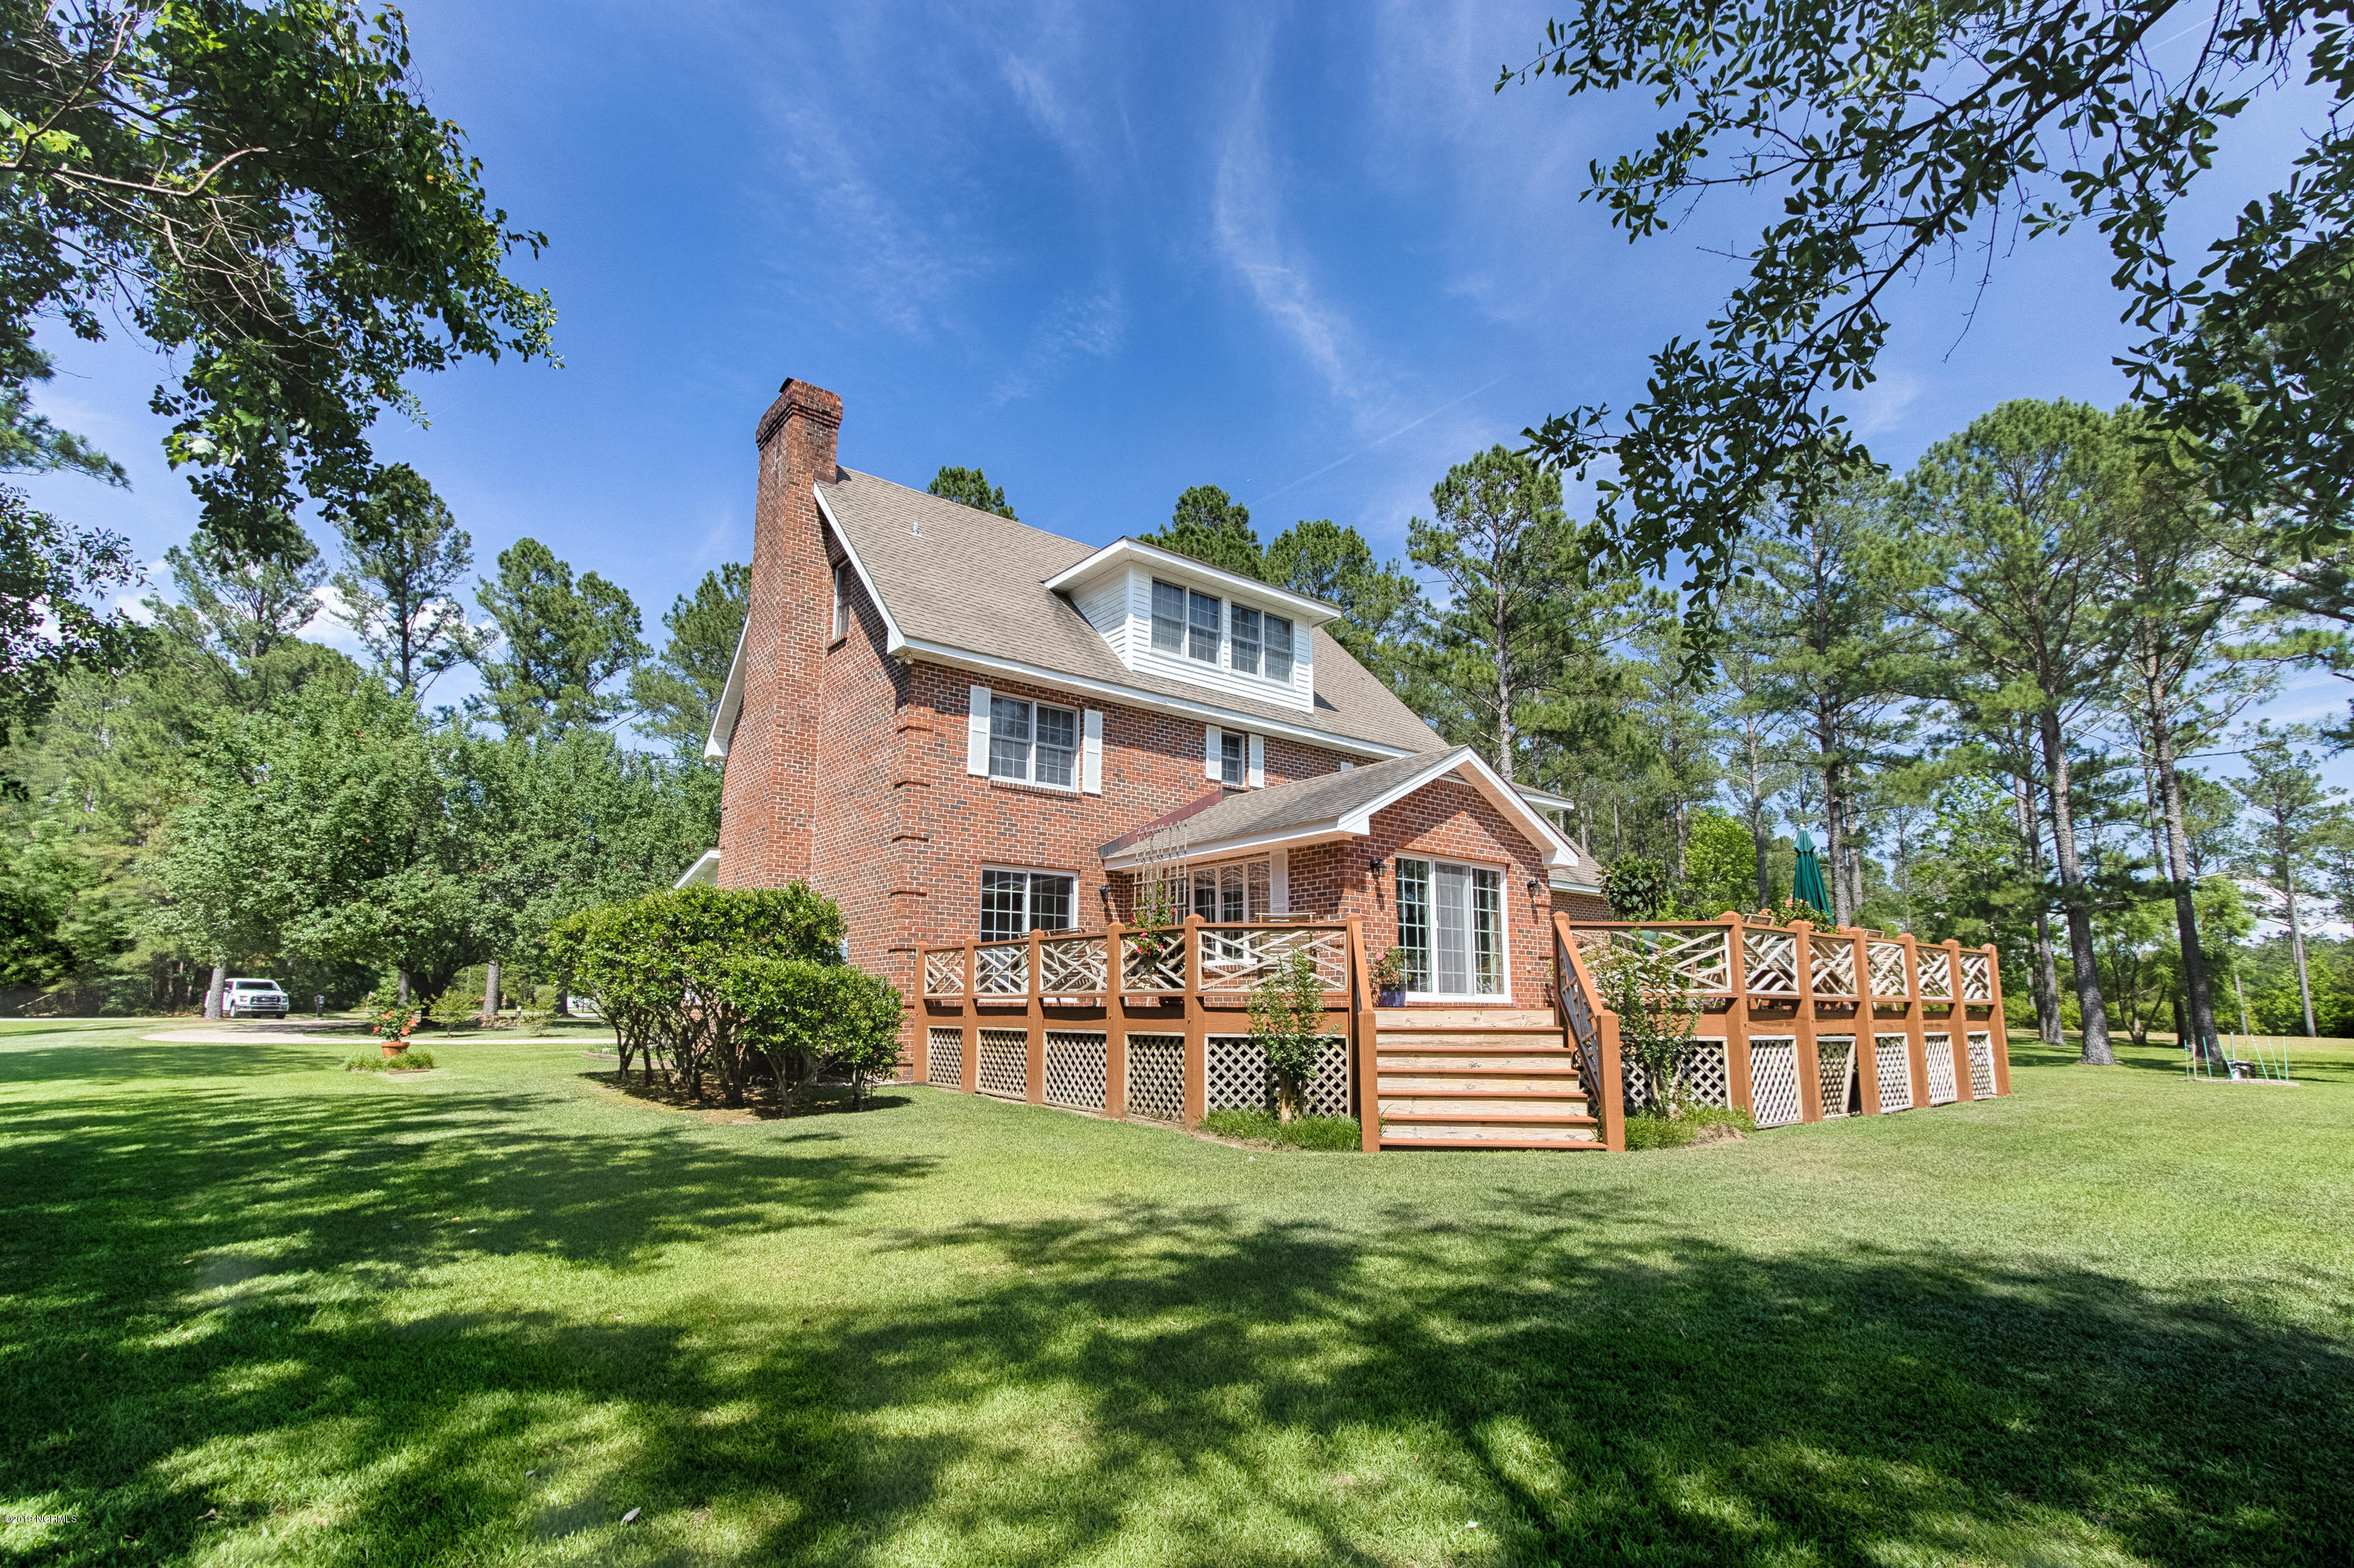 202 Sumter Court, Havelock, North Carolina 28532, 4 Bedrooms Bedrooms, 12 Rooms Rooms,3 BathroomsBathrooms,Single family residence,For sale,Sumter,100206921